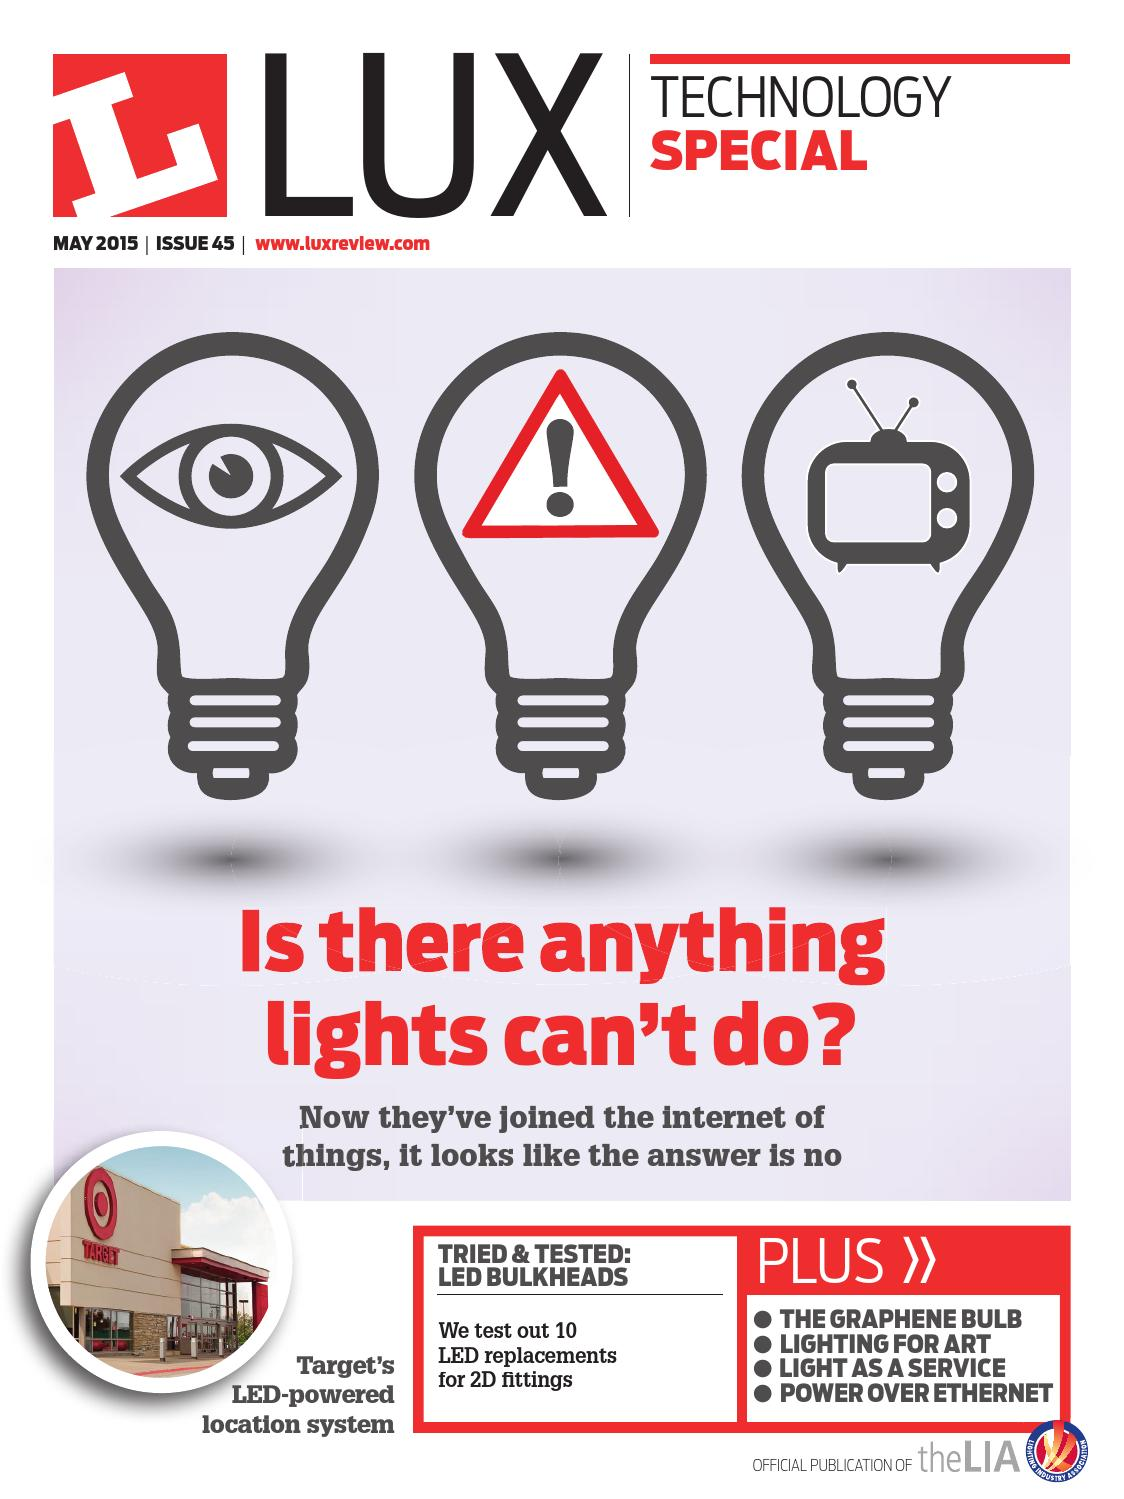 Lux Special Technology By Revo Media Issuu Well Dcc Wiring Ho Train Layouts On 3 Lamp T5 Ballast Diagram